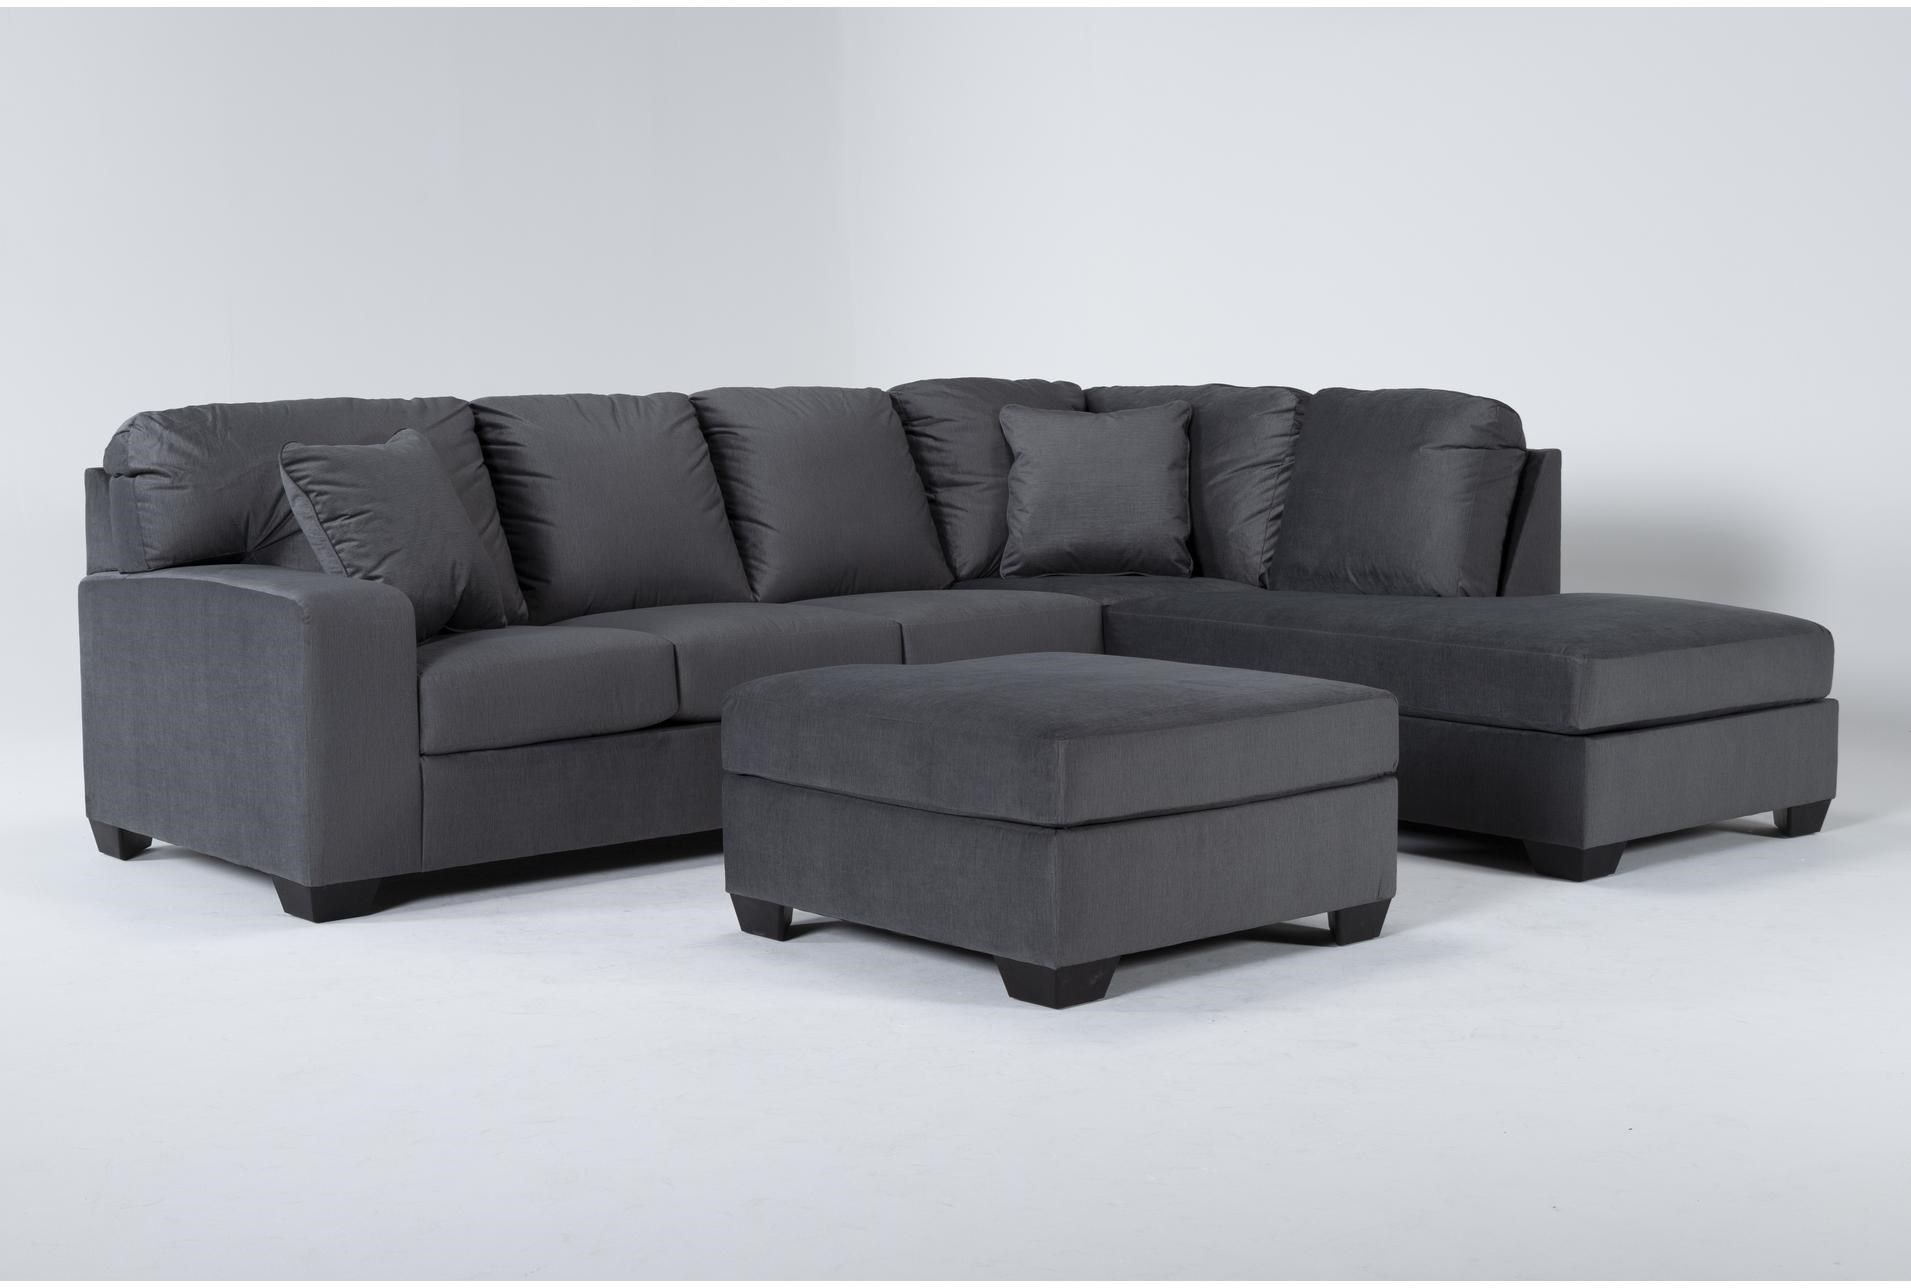 Romy Graphite 2 Piece Sectional With Right Arm Facing Chaise Ottoman In 2021 2 Piece Sectional Sofa Sectional Sectional Sofa